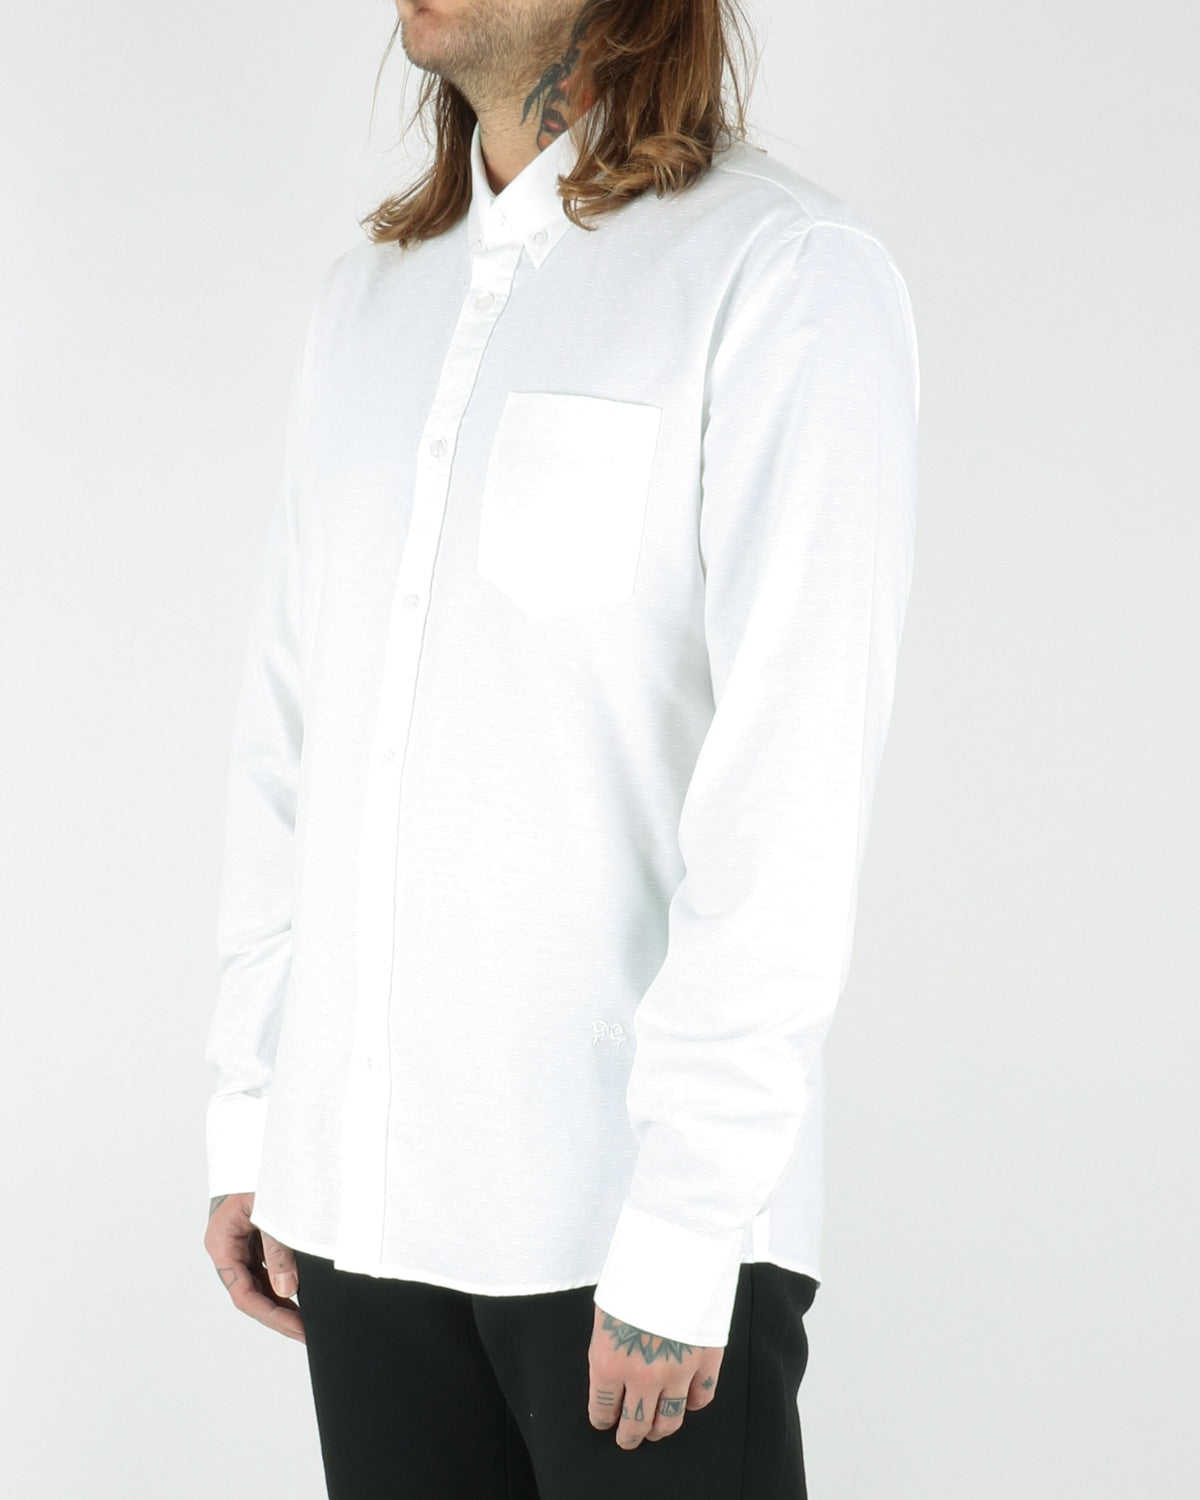 soulland_rubenstein shirt_white_view_2_3